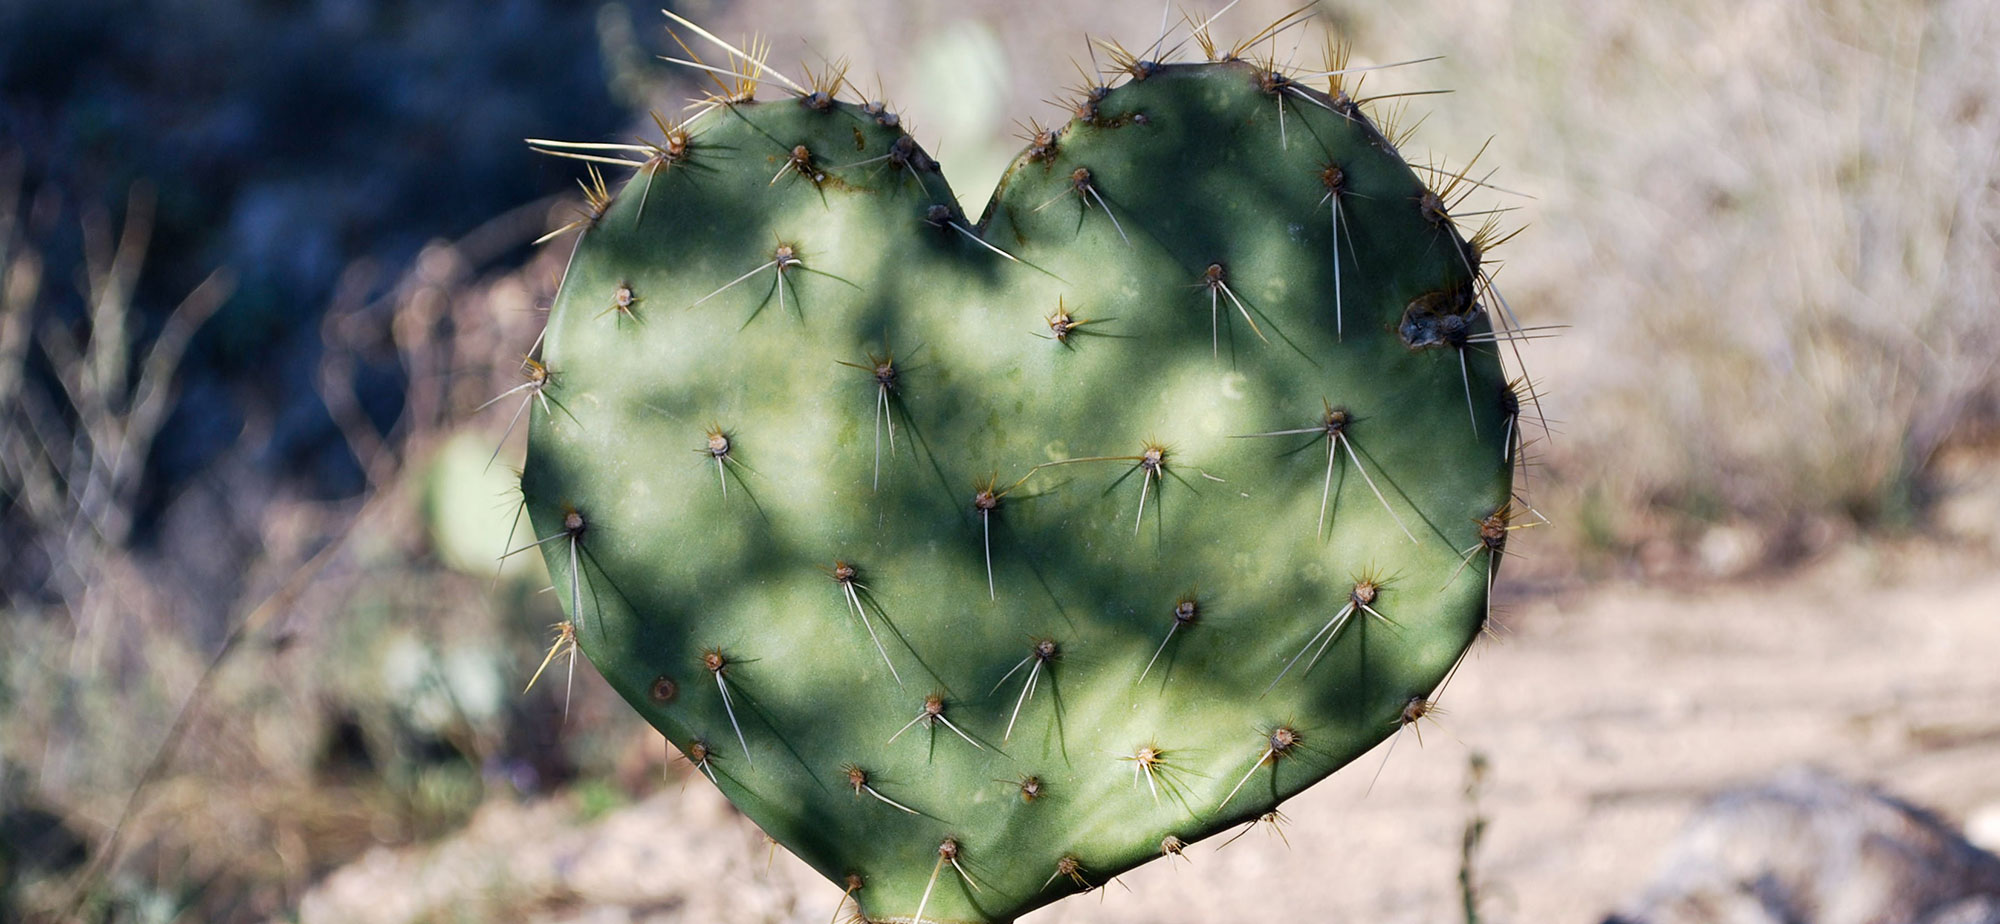 Photo of a cactus